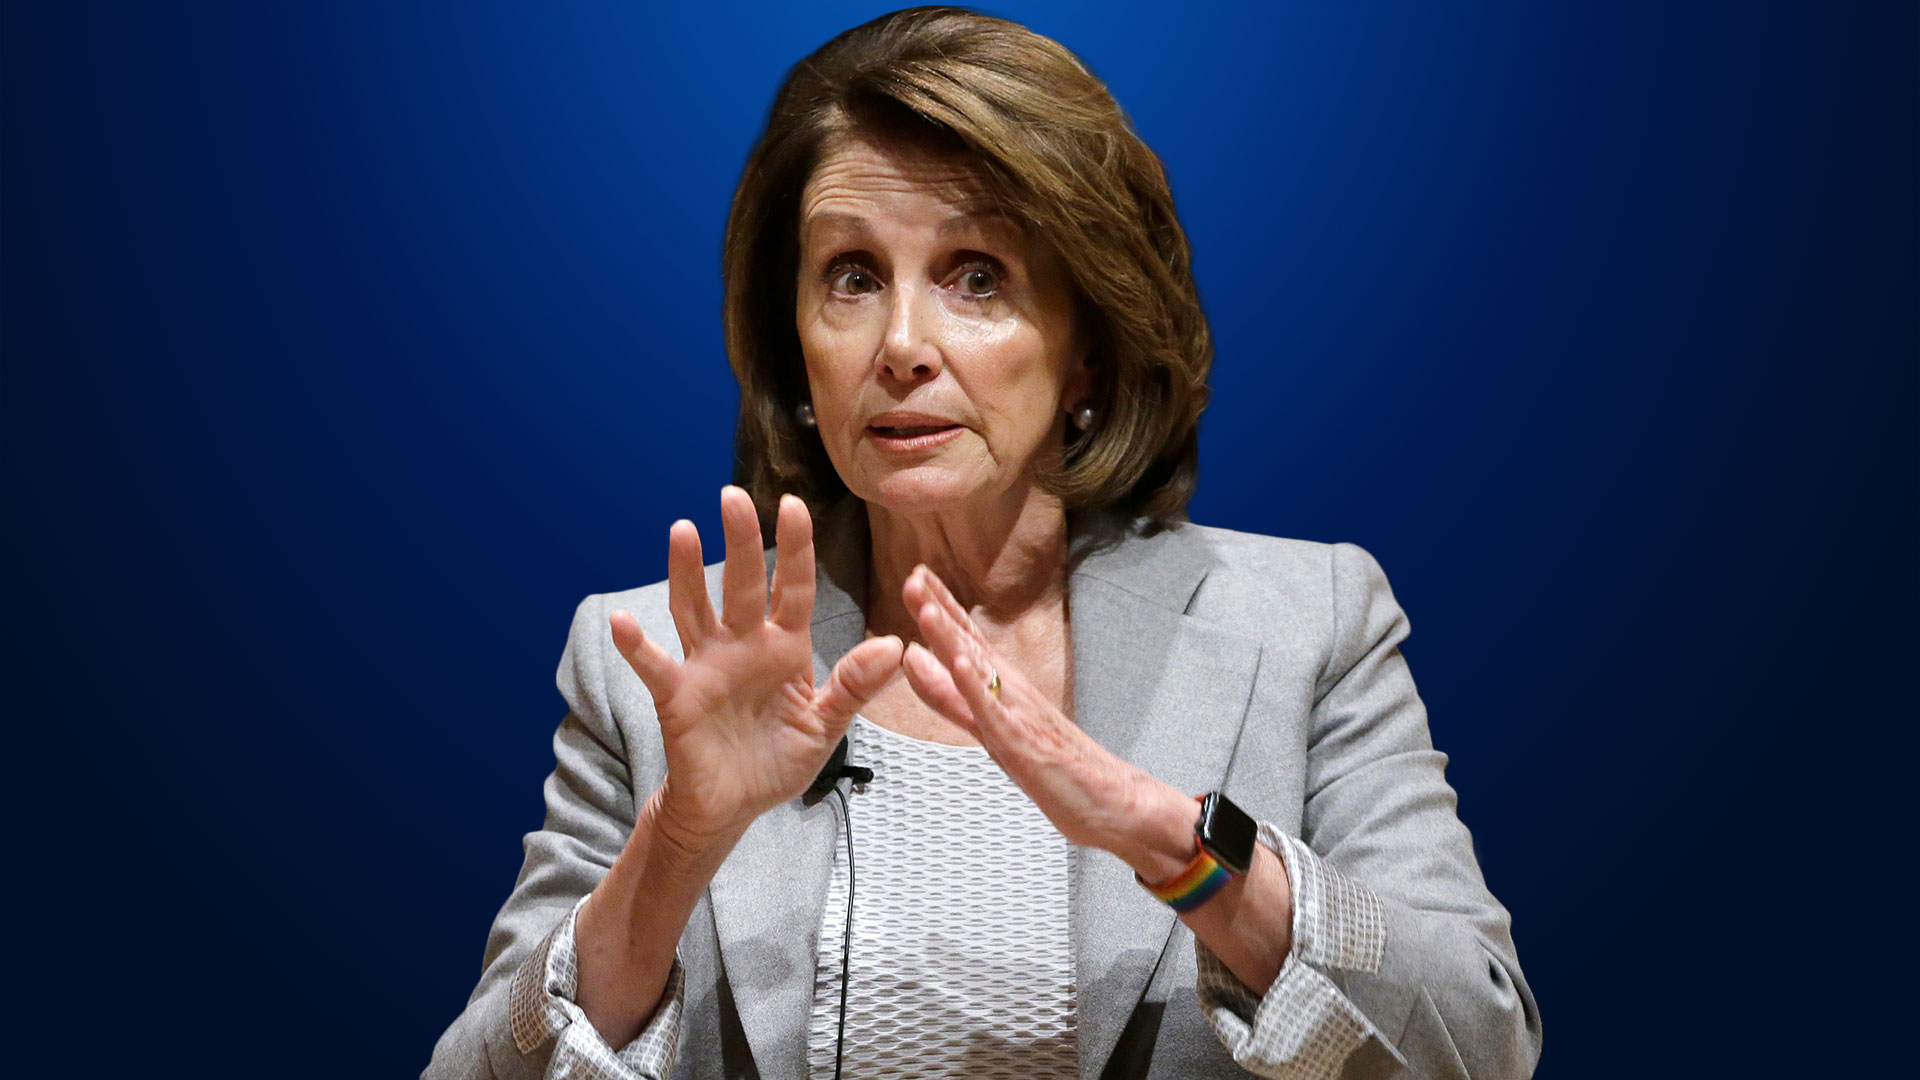 KELO Nancy Pelosi